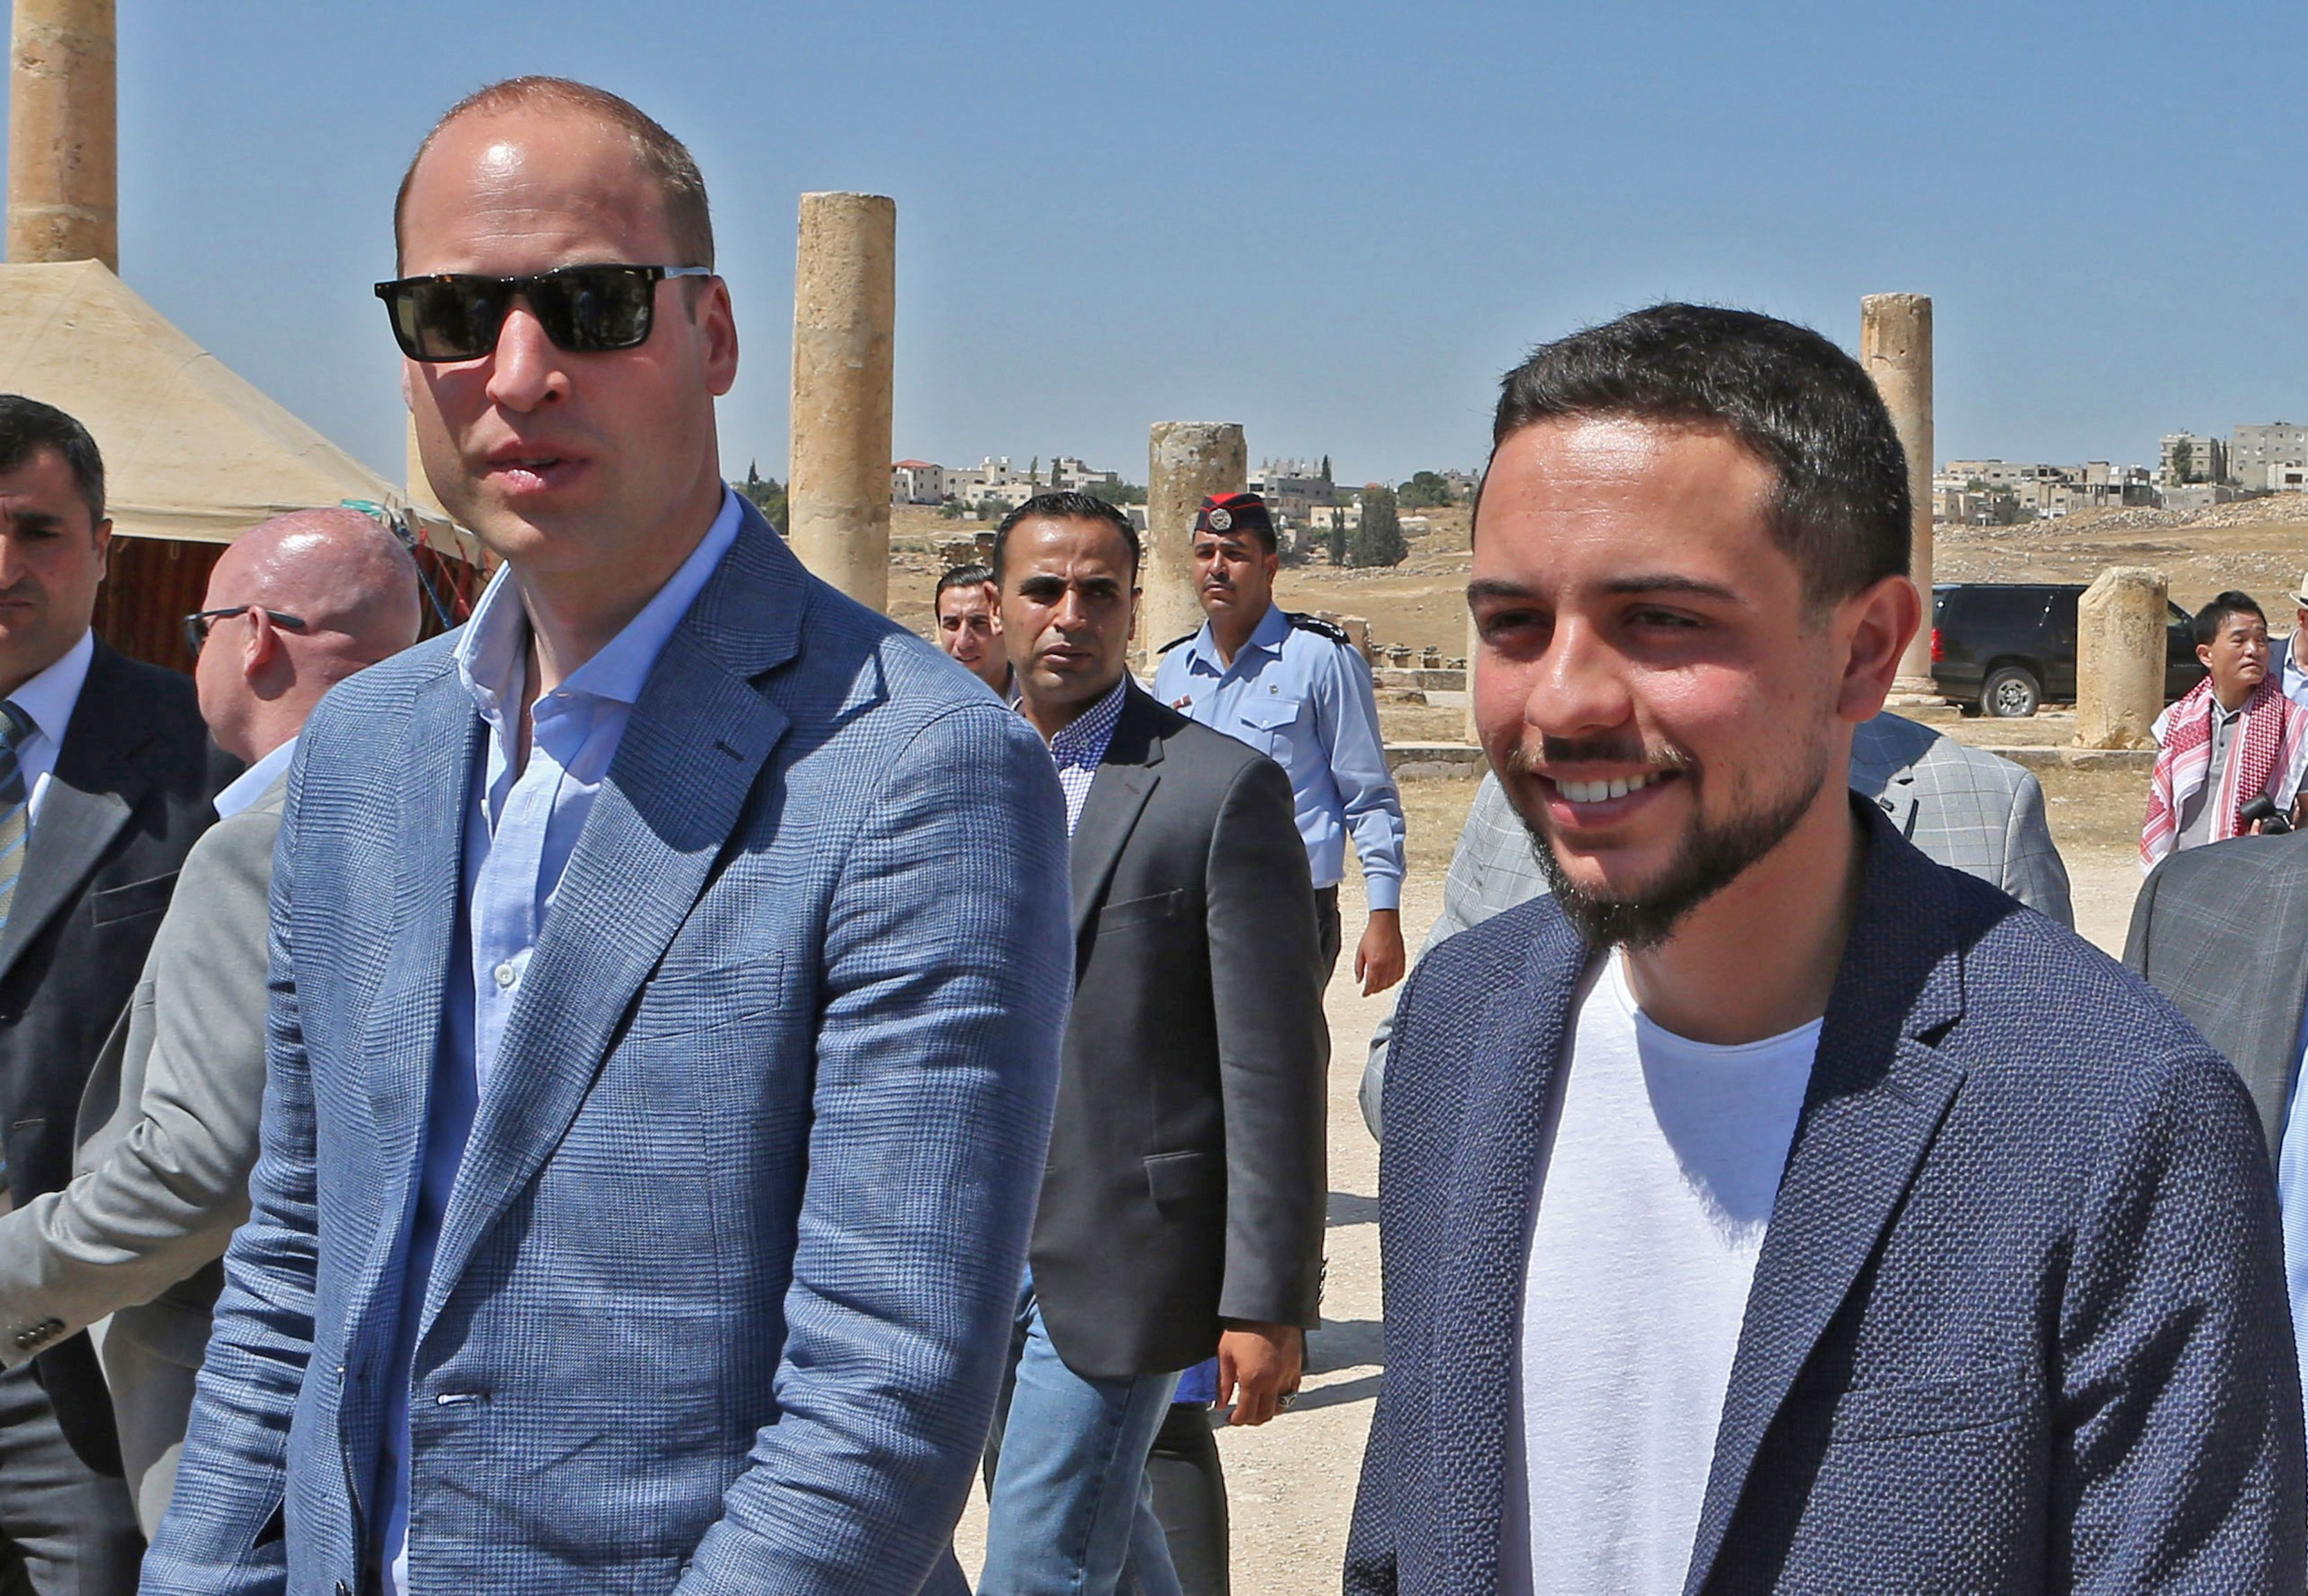 Britain's Prince William (L) and Jordanian Crown Prince Hussein bin Abdullah (R) visit the Jerash archaeological site, some 50 kilometers north of the Jordanian capital Amman, on June 25, 2018. - The 36-year-old Duke of Cambridge arrived in Jordan on Sunday at the start of a Middle East tour that will see him become the first British royal to pay official visits to both Israel and the Palestinian territories.